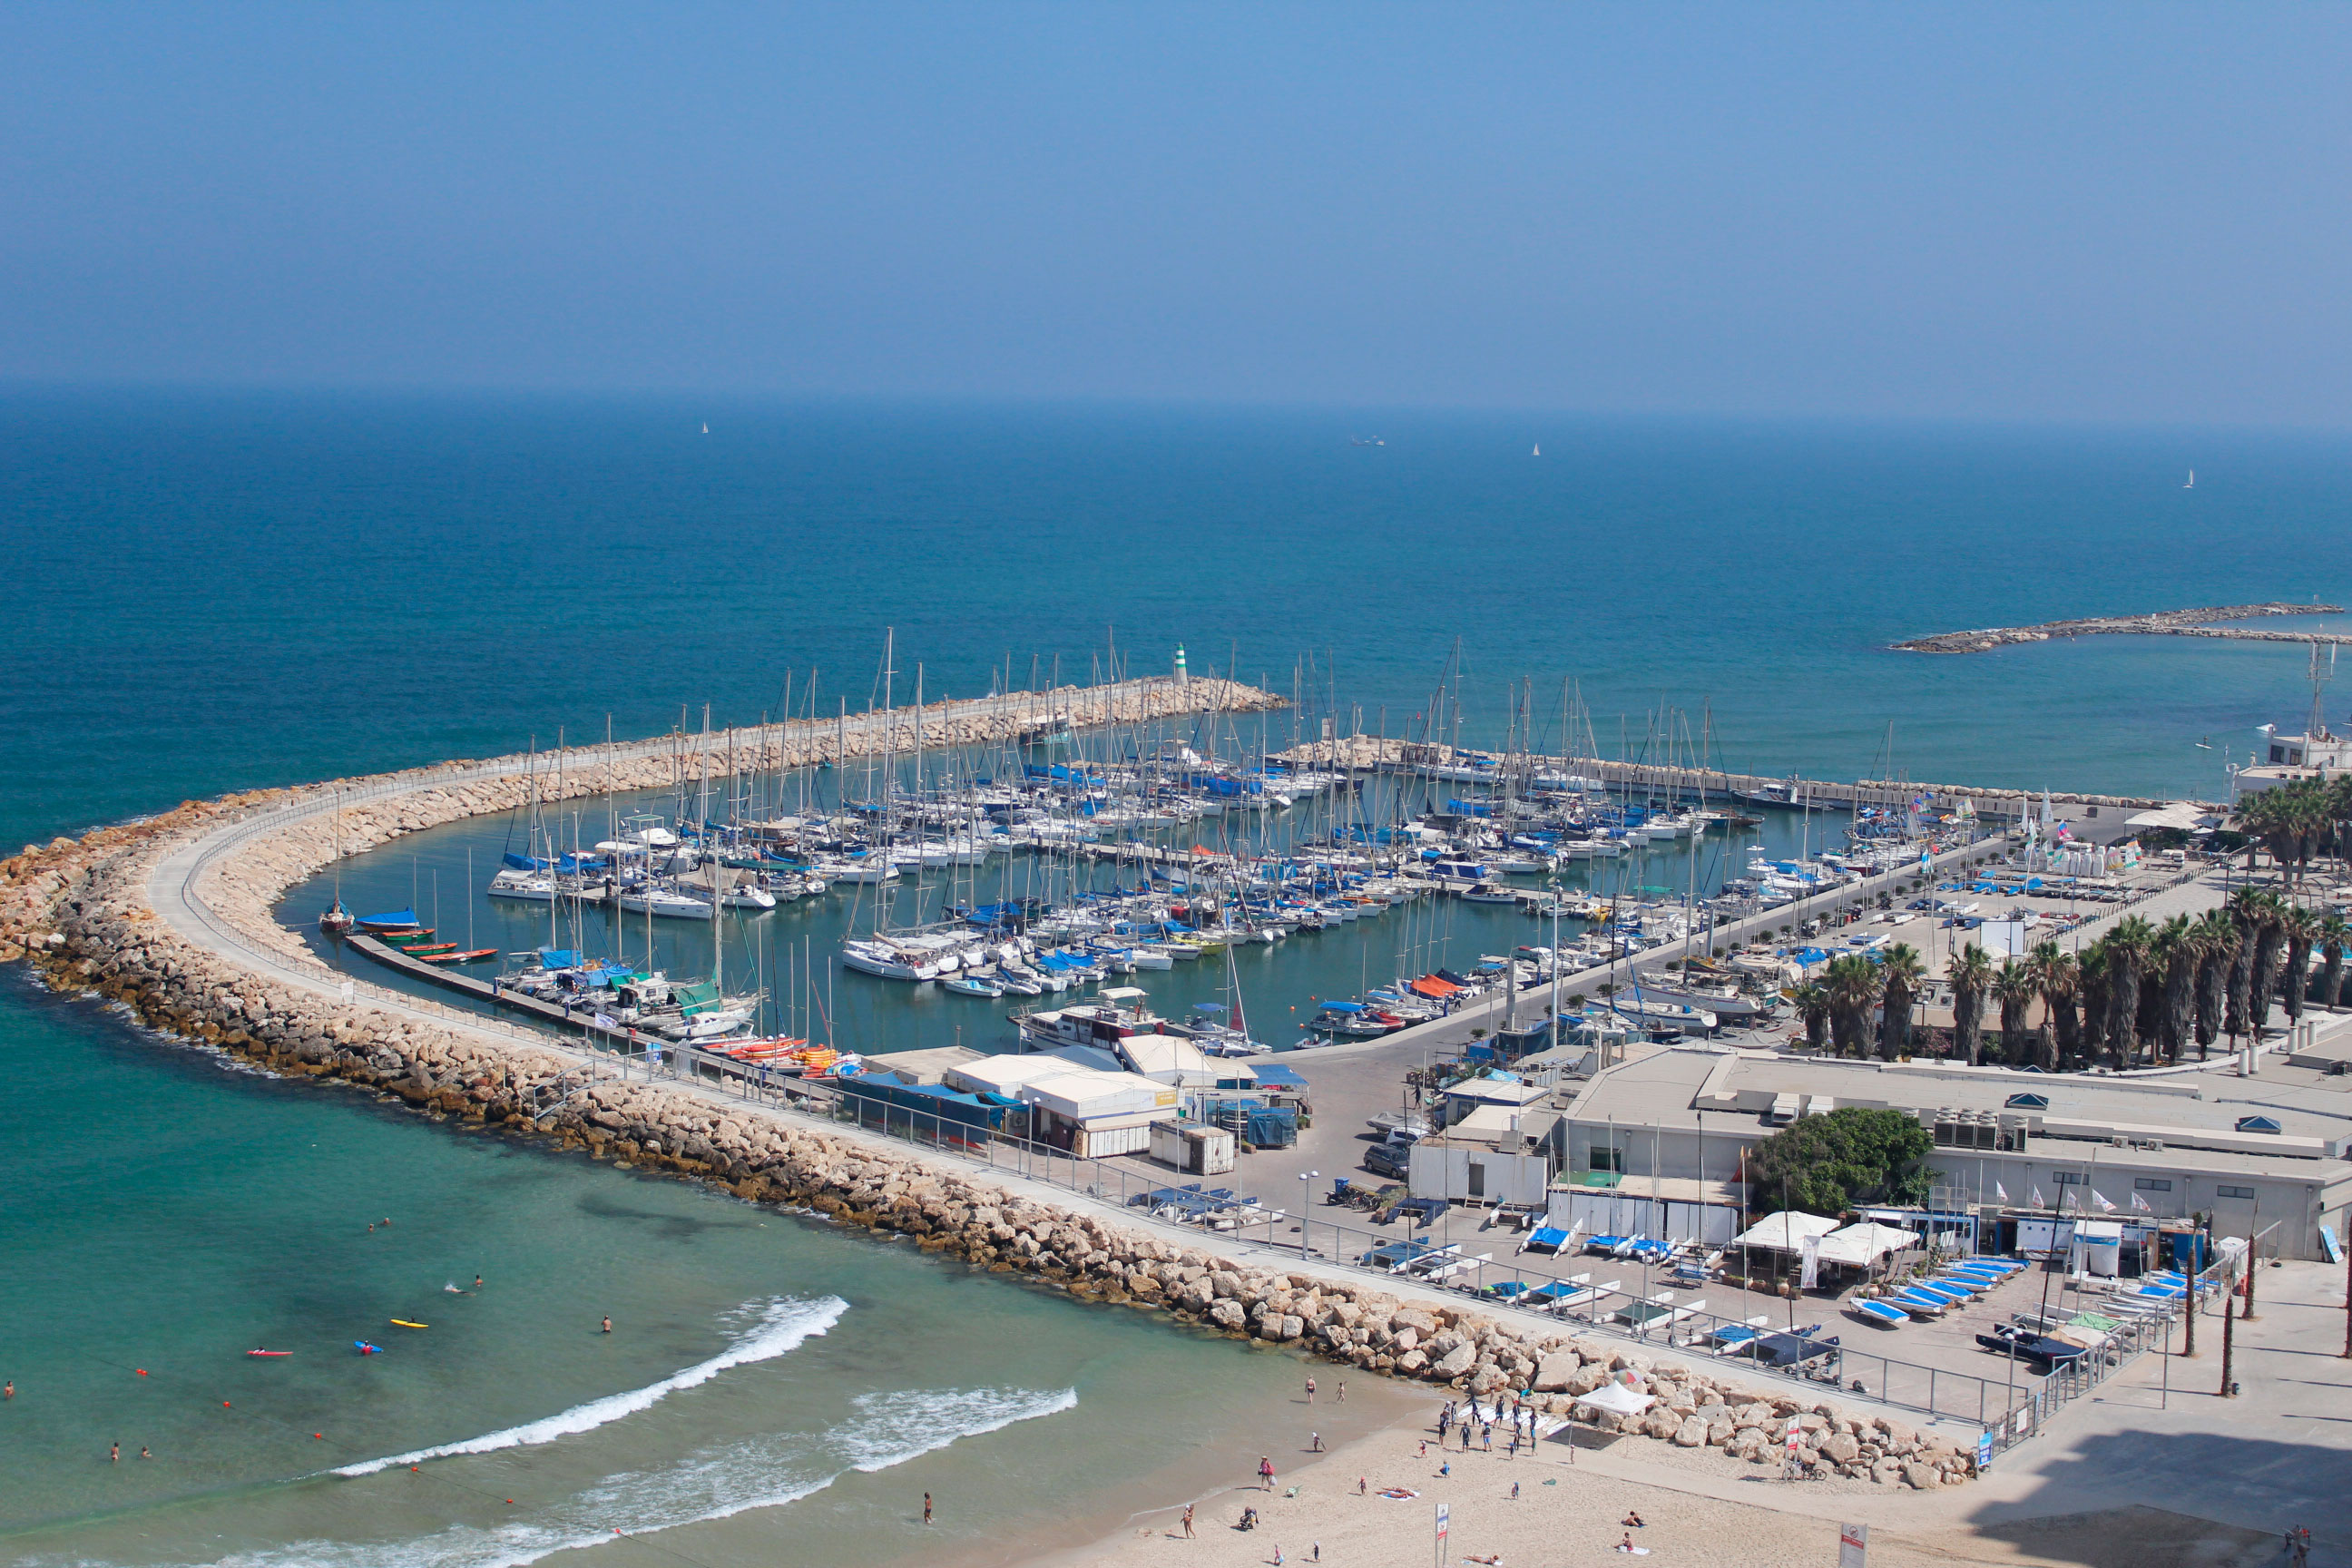 birds eye view of Tel Aviv marina